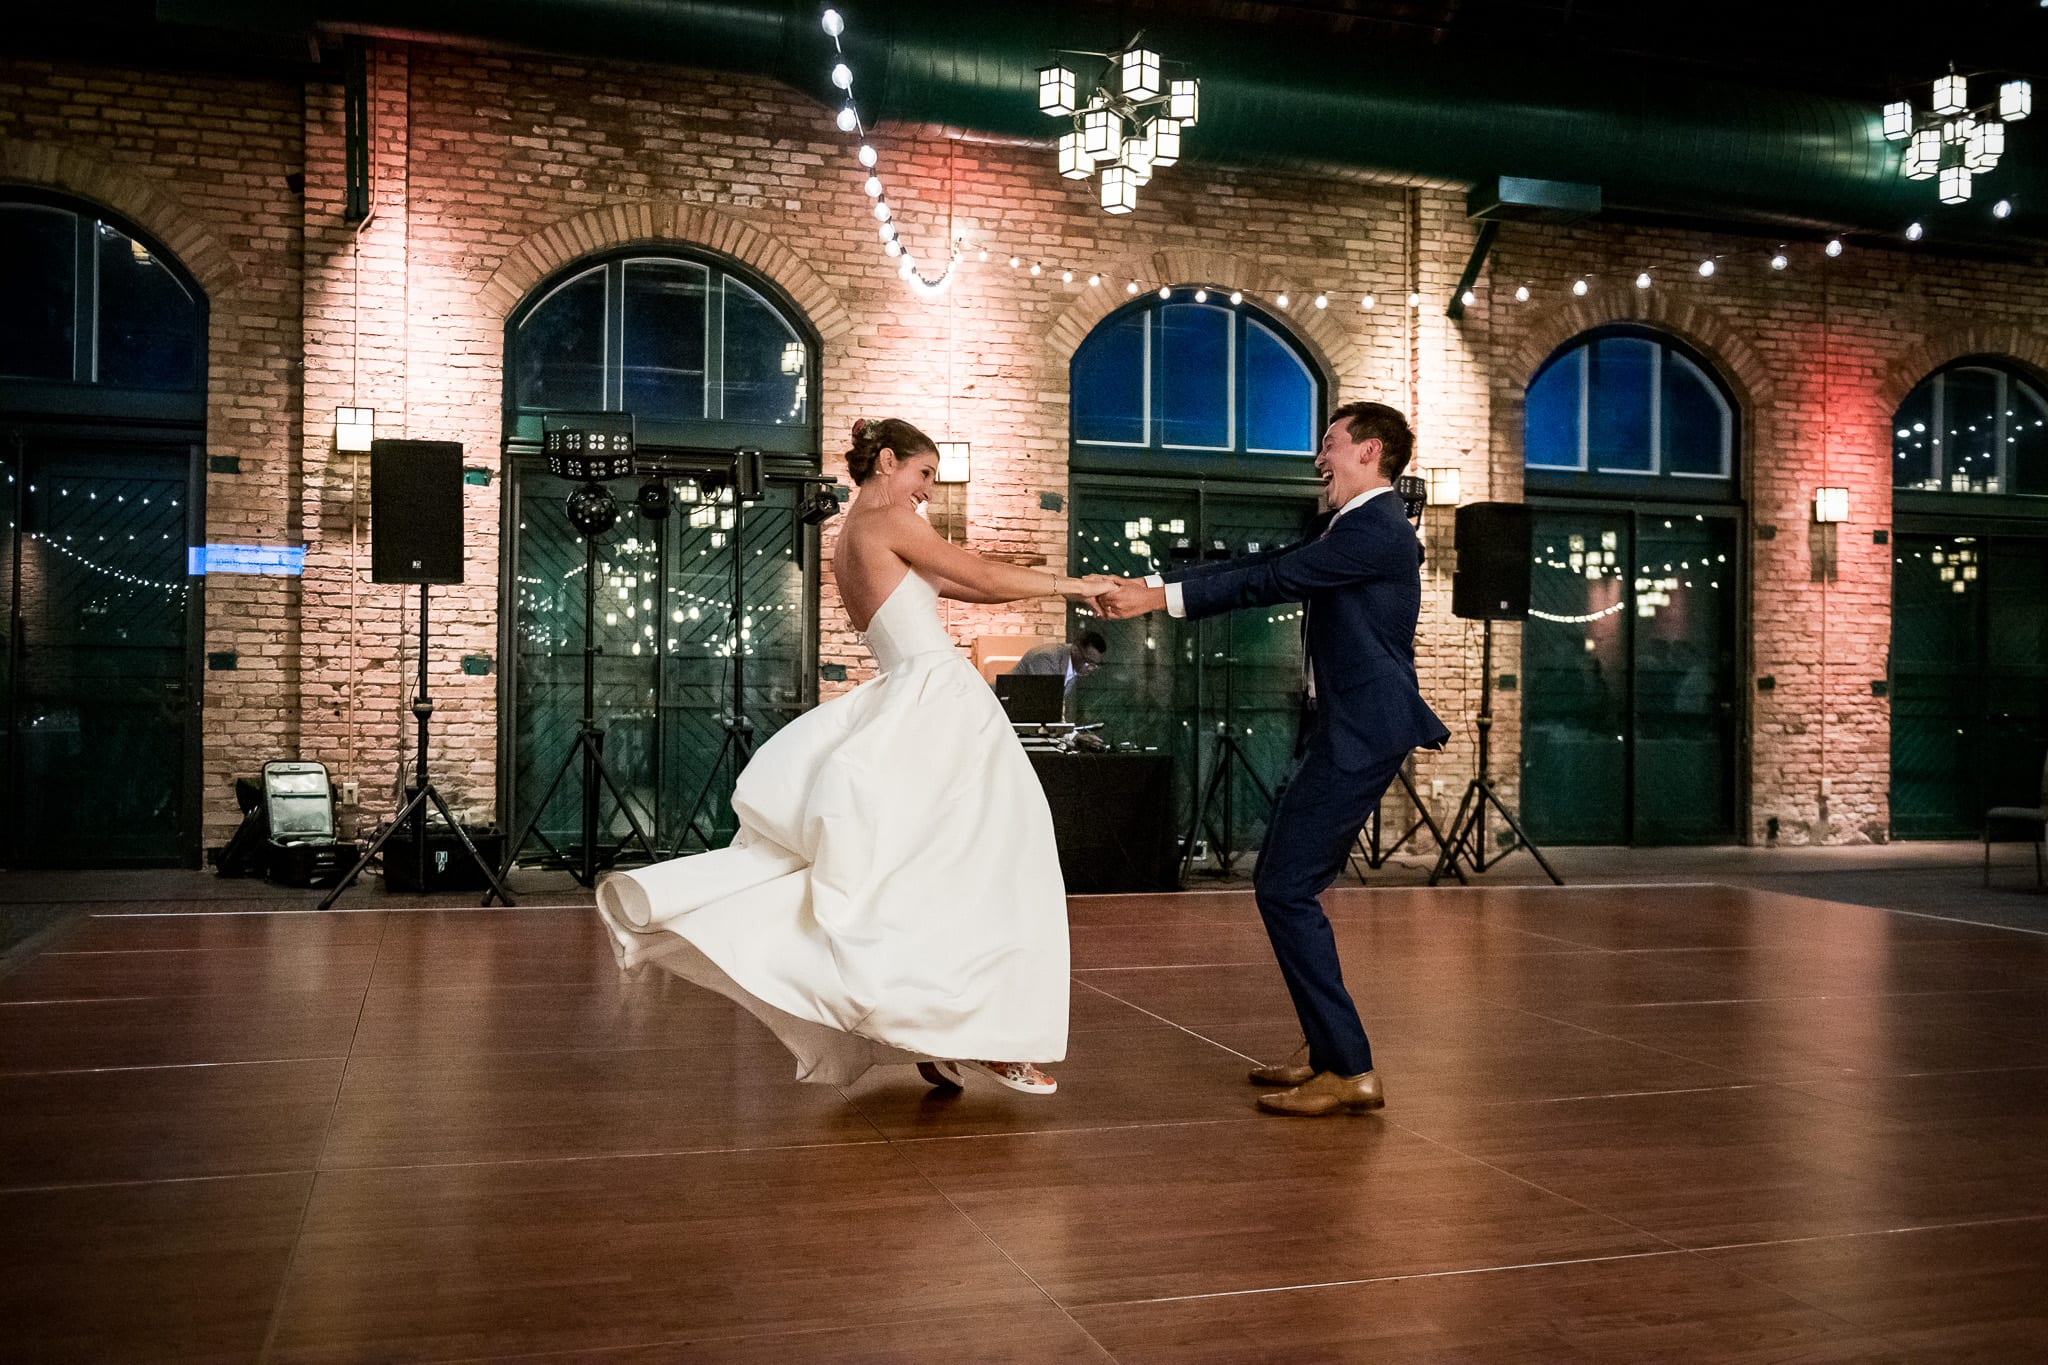 Bride and groom laughing out loud as they twirl each other around during their first dance at Nicollet Island Pavilion